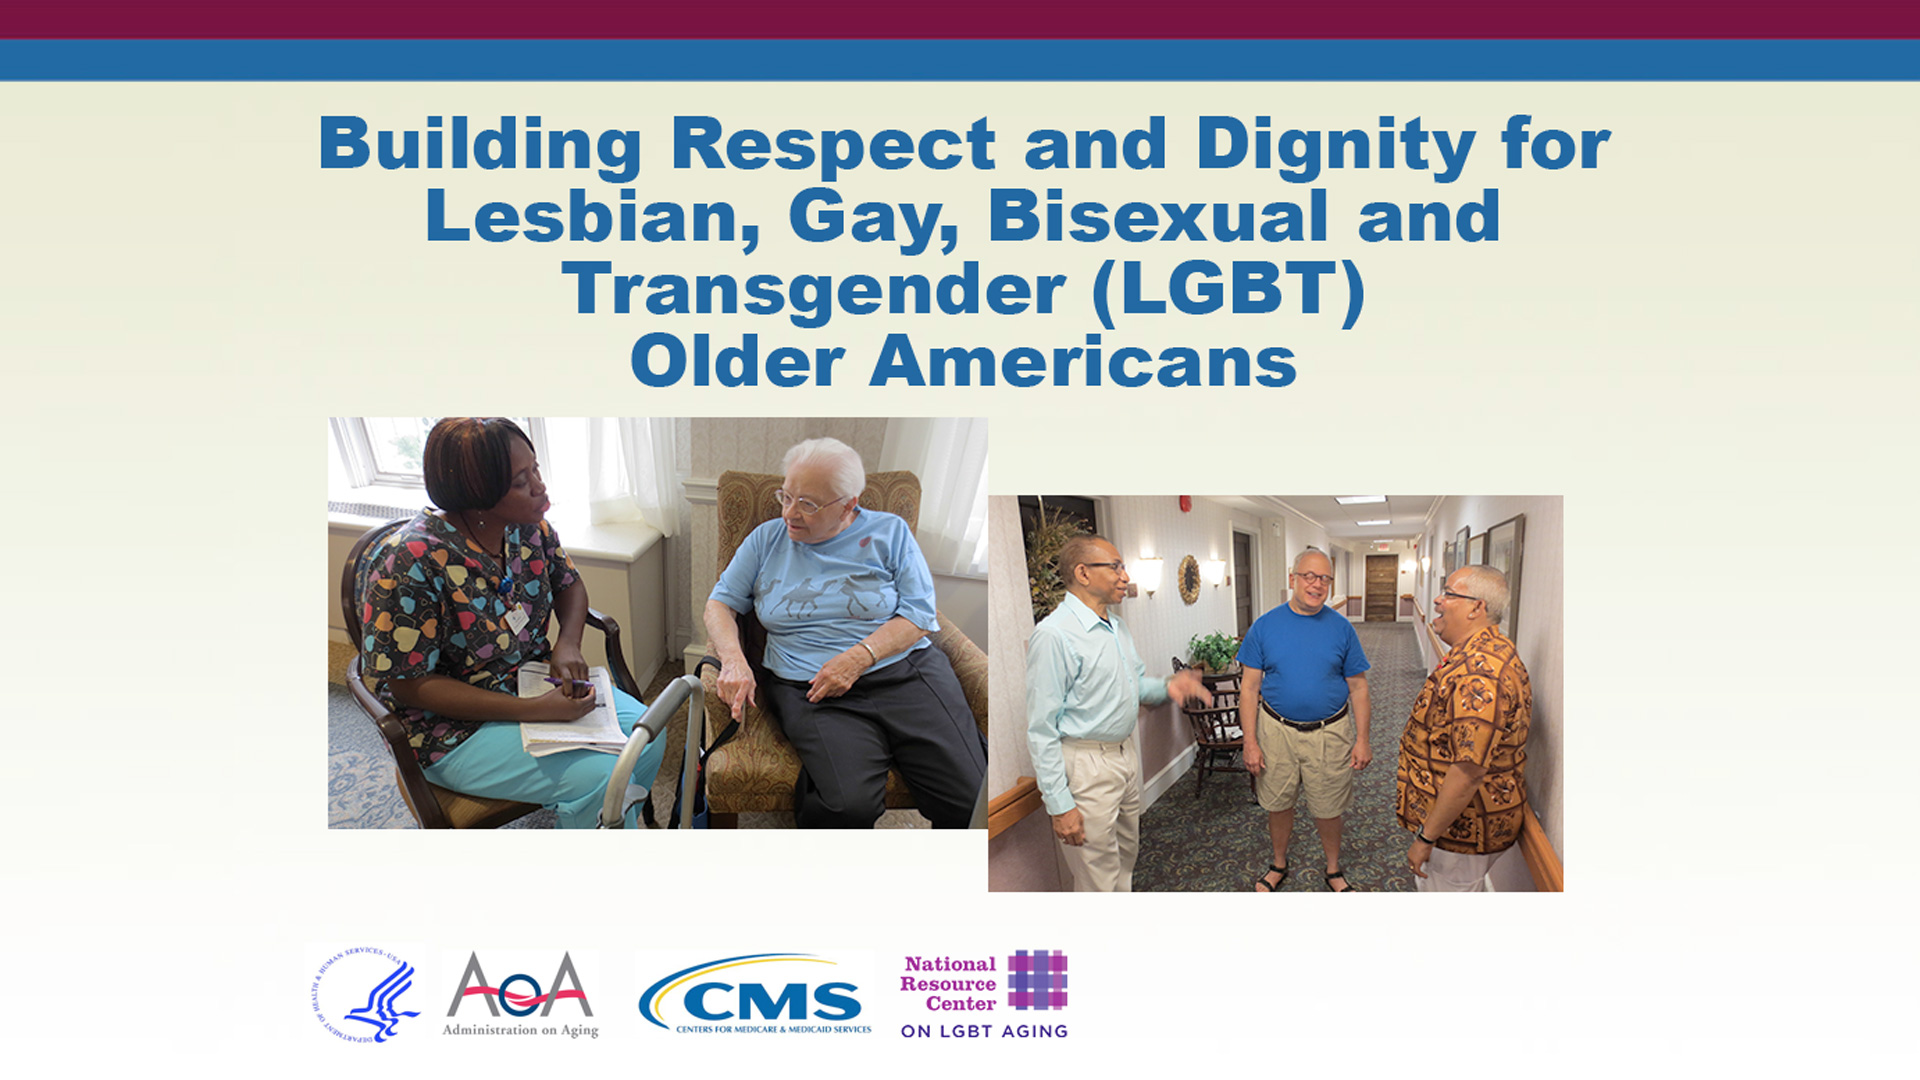 Building Respect and Dignity of LGBT Older Americans online training for caregivers